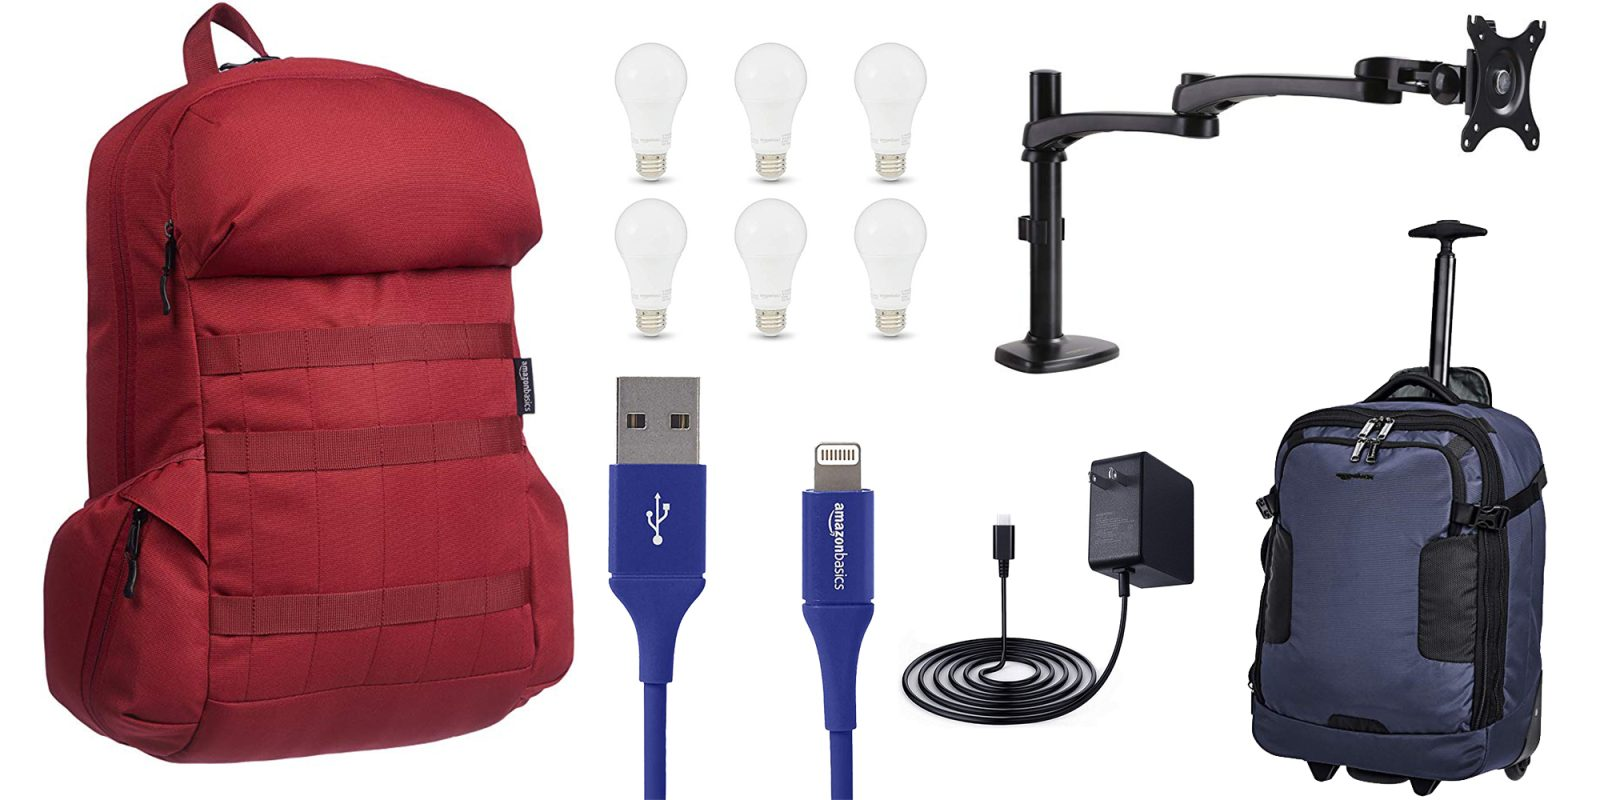 New AmazonBasics sale offers deals on Mac accessories, fashion, tech, much more